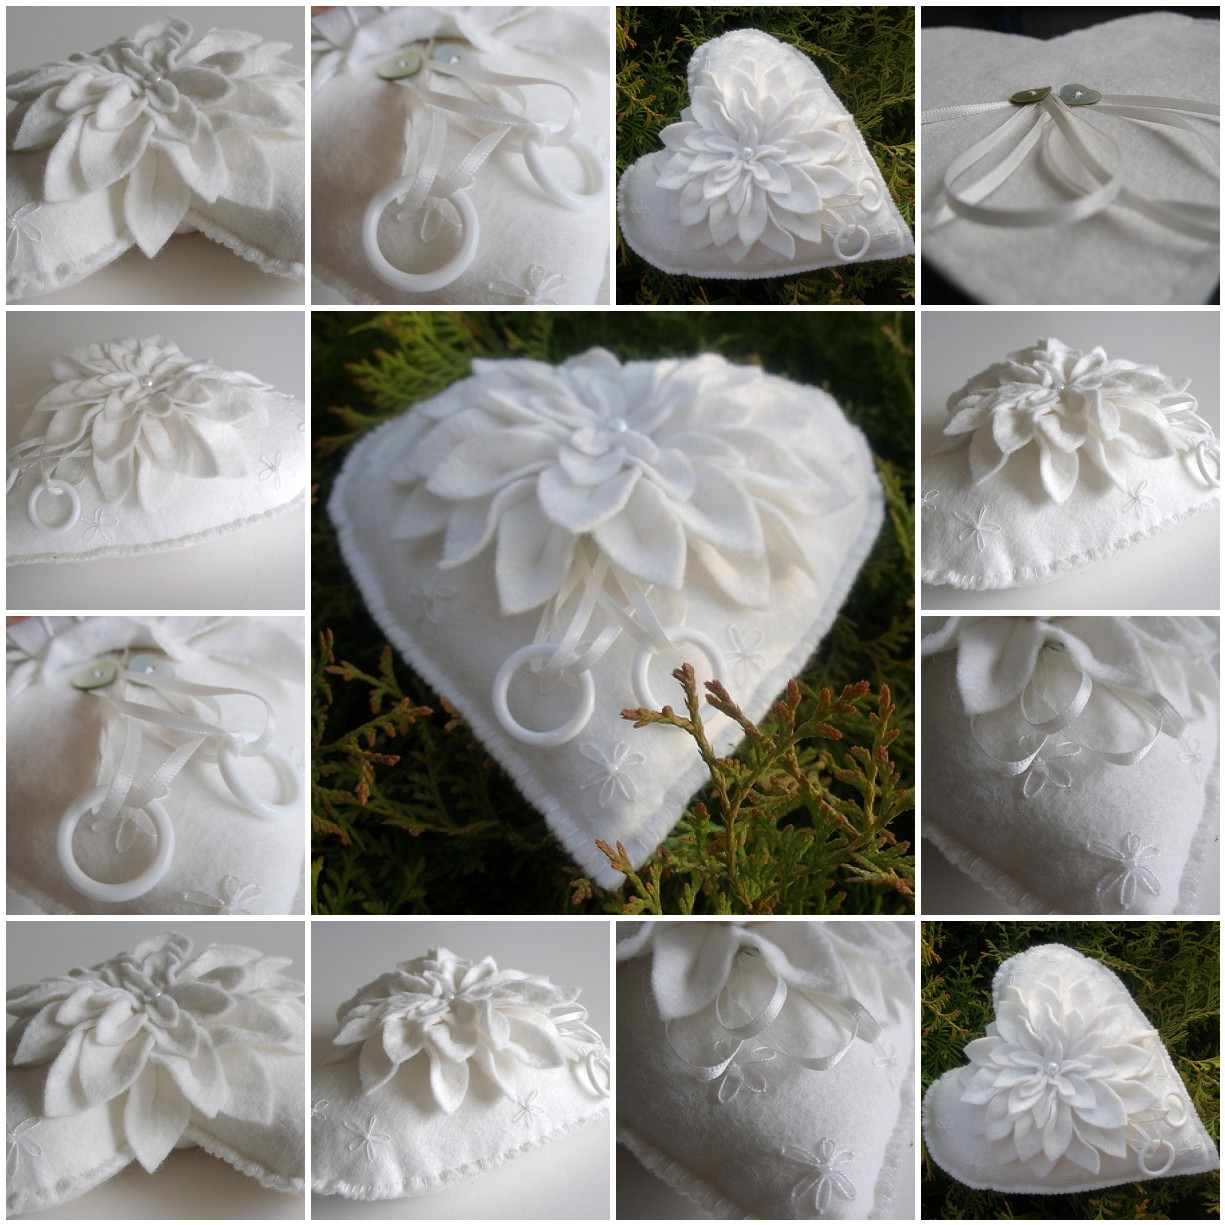 Felt wedding pillow